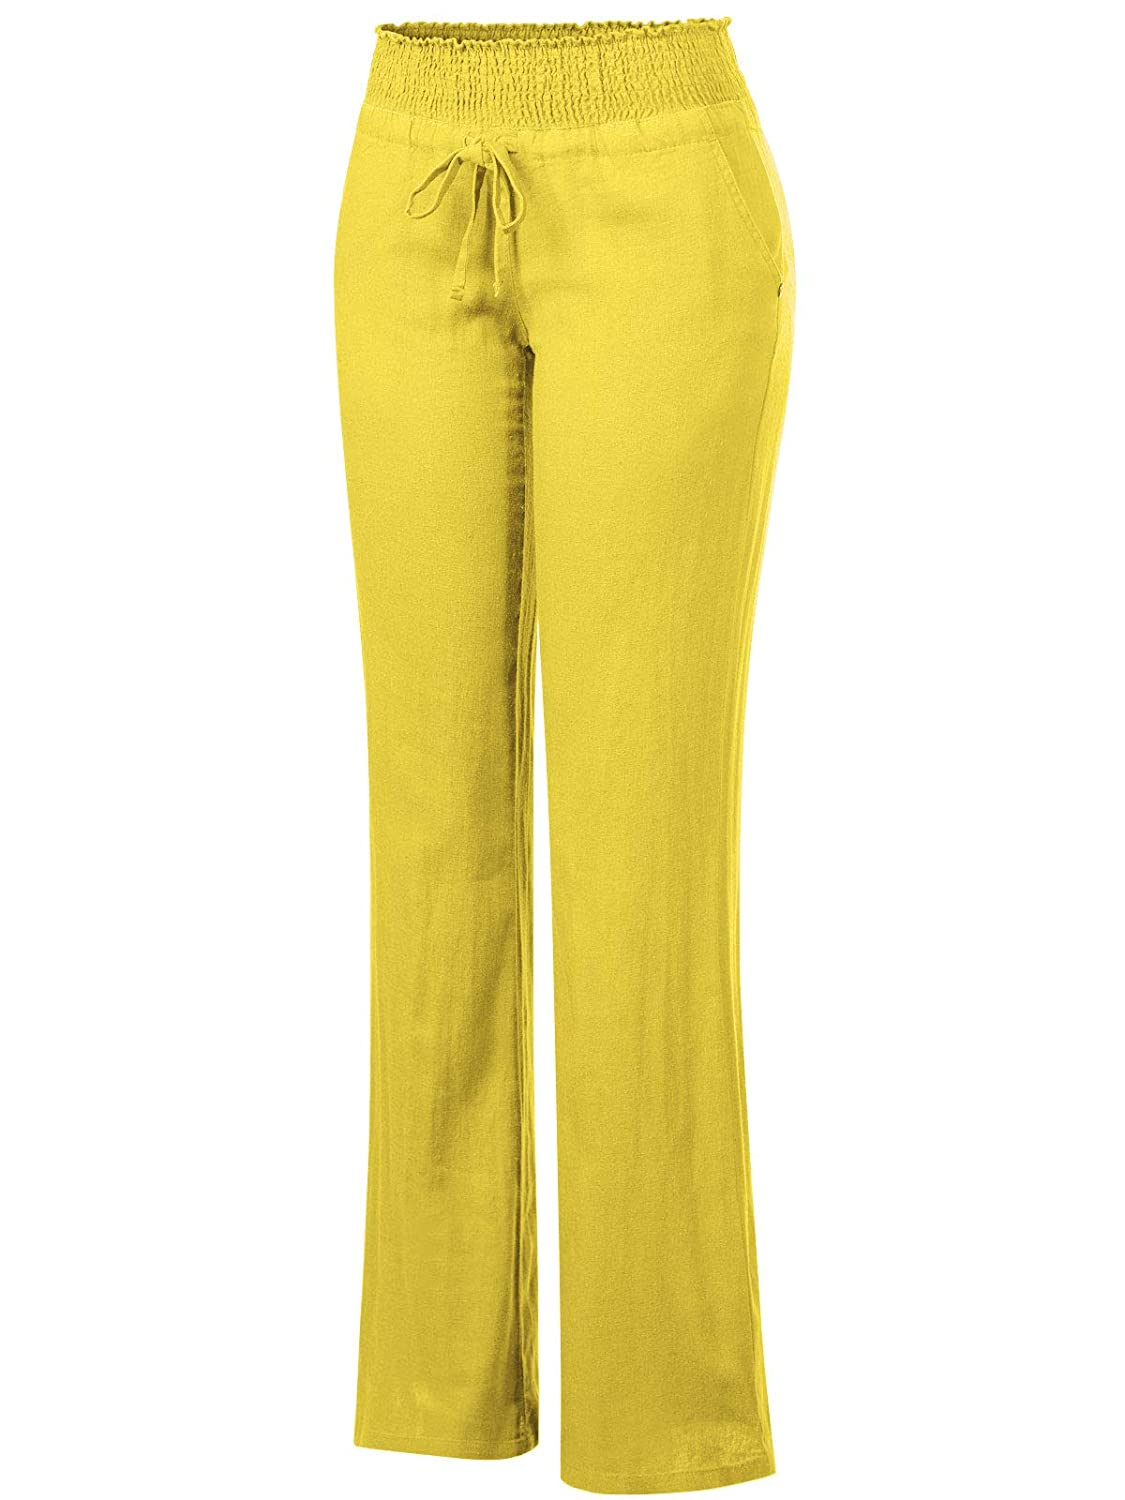 Design by Olivia Womens Comfy Drawstring Elastic Waist Linen Pants with Pocket